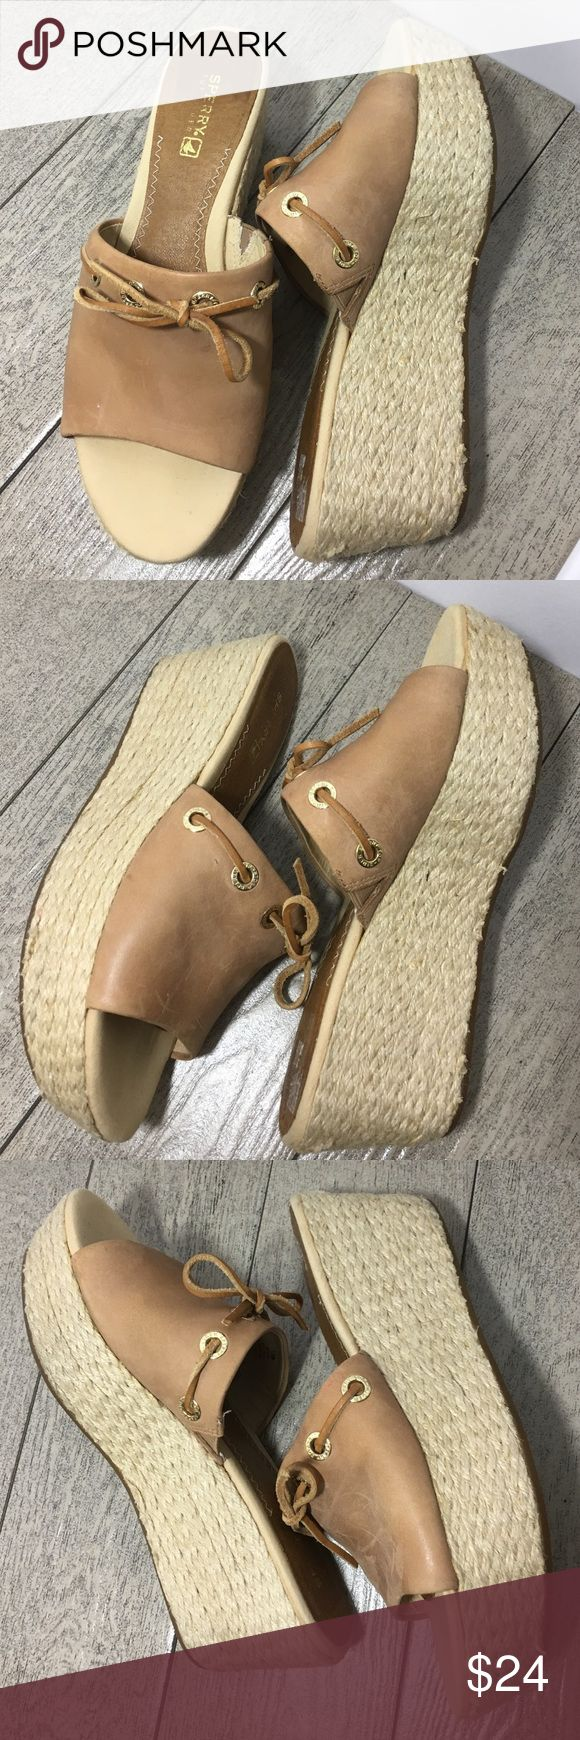 """Sperry⛵️ Tan Brown Leather Upper Slip On Wedge 7.5 Height: 2.5"""" Wedge . One mark at rear of left shoe (last photo), one red scuff on left shoe (3rd photo)   ❣️Thank you for your business! 👍🏼I love reasonable offers!  🏃🏻 Next business day shipping!  ✅Check out my closet for all the deals!  💰Bunde 2+ and save 10%  ⛔️Smoke free, we have 1 🐶 but he is no             where near the items  🚫No trades, no outside offers, no modeling Sperry Top-Sider Shoes Wedges"""